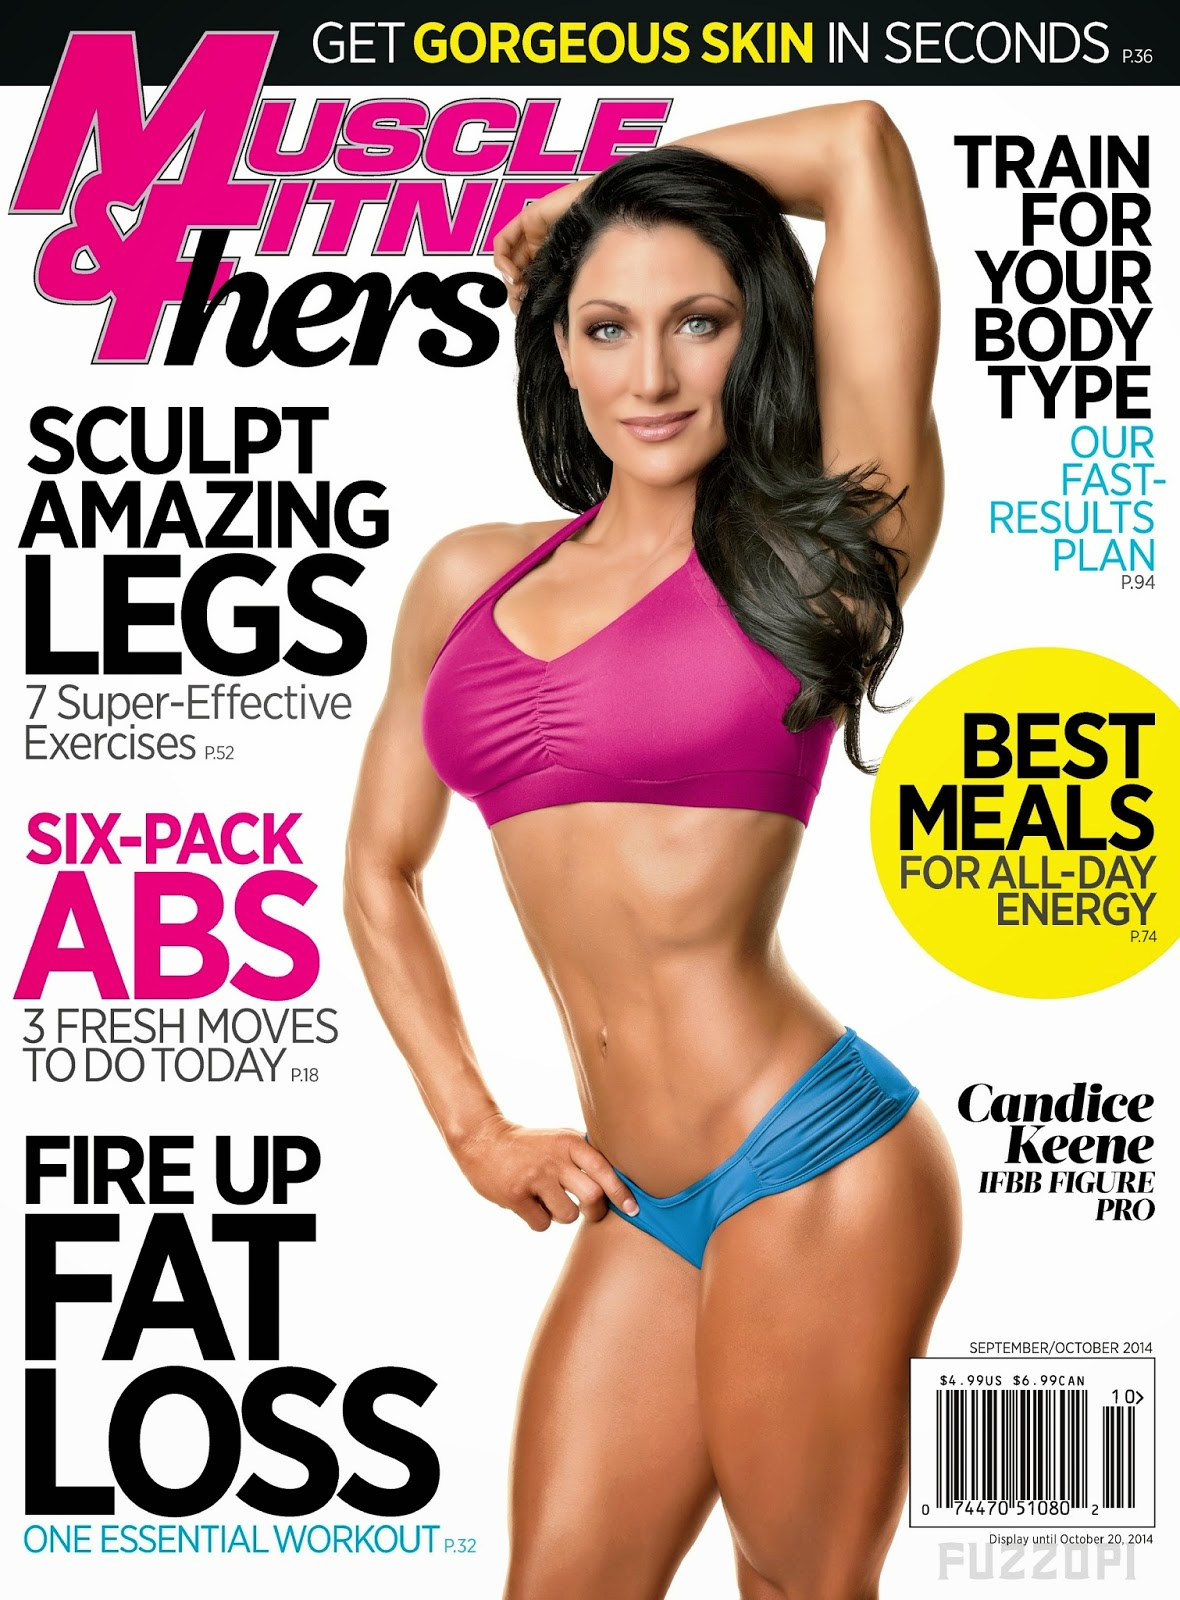 Candice Keene - Muscle & Fitness Hers Magazine, September/October 2014